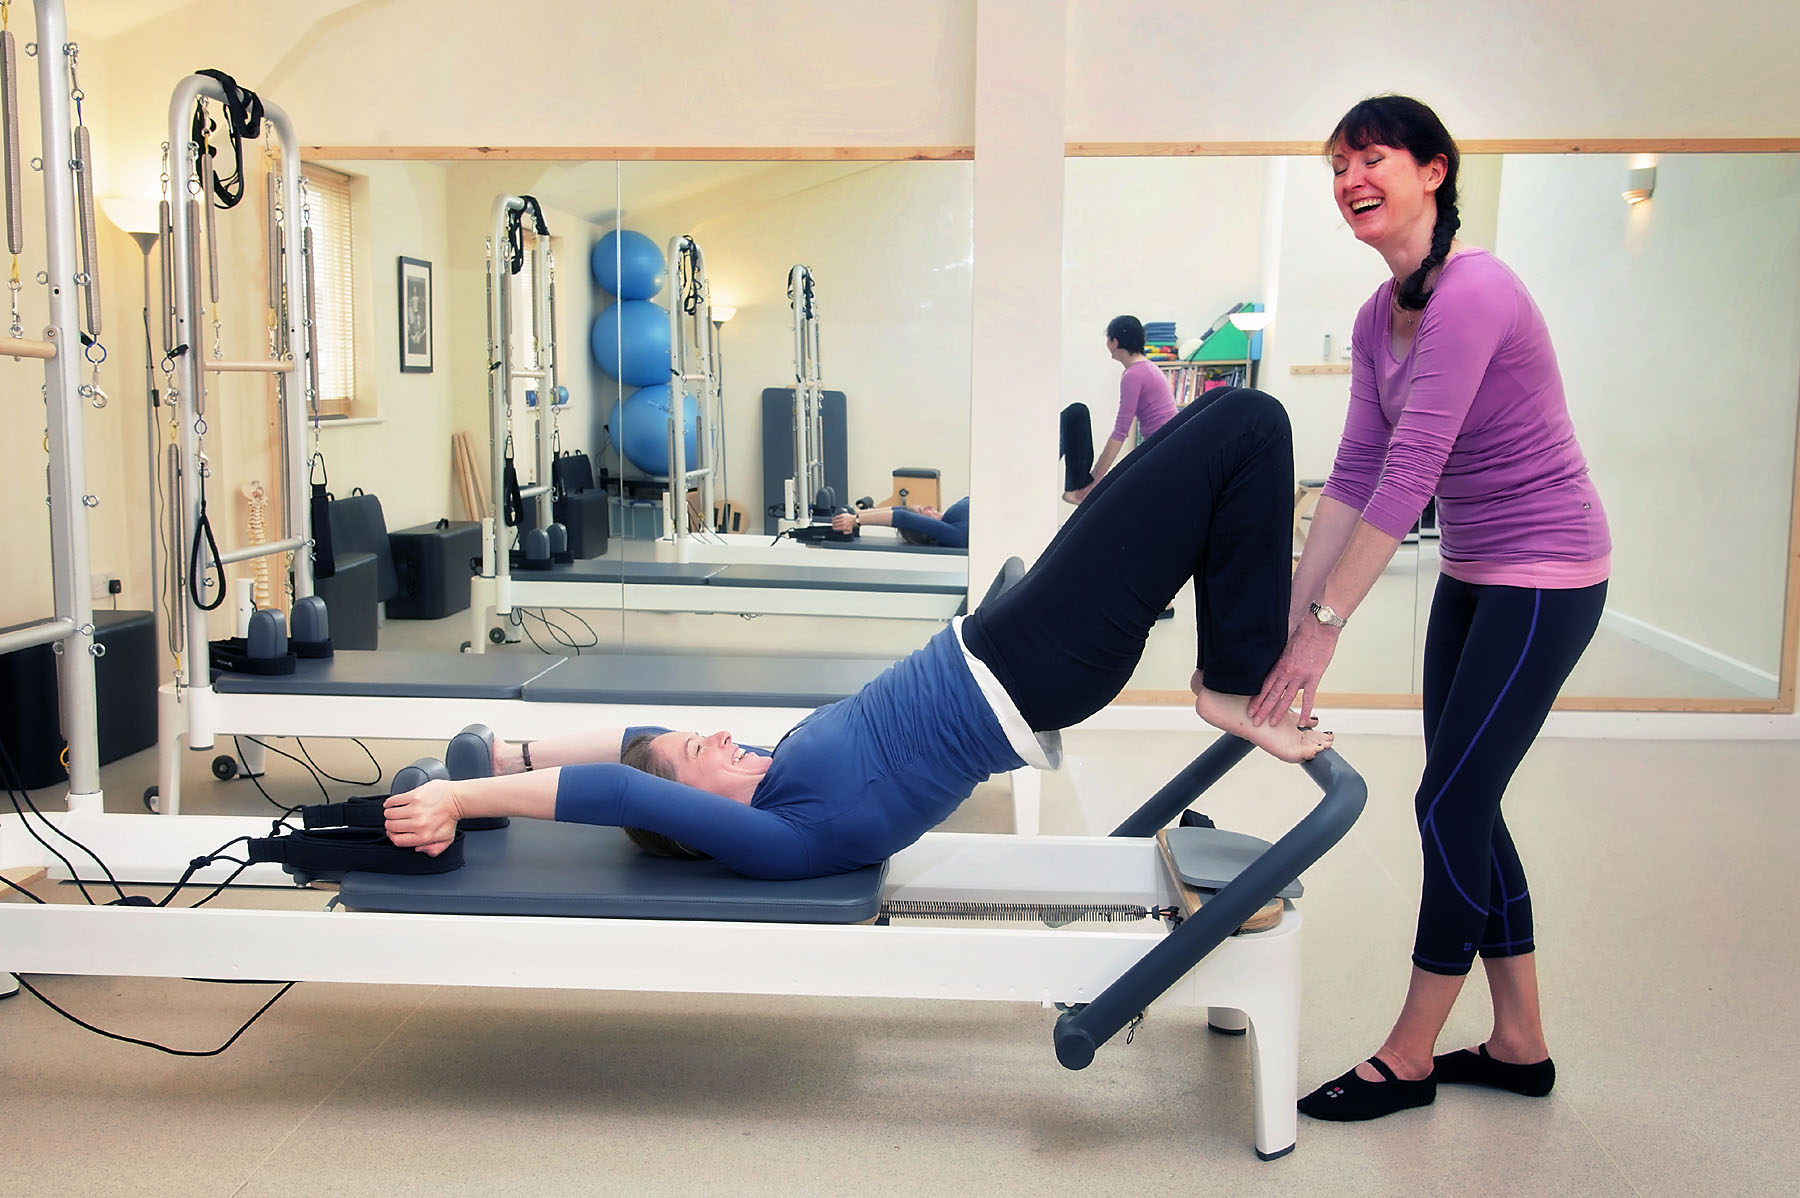 Pilates reformer equipment in use